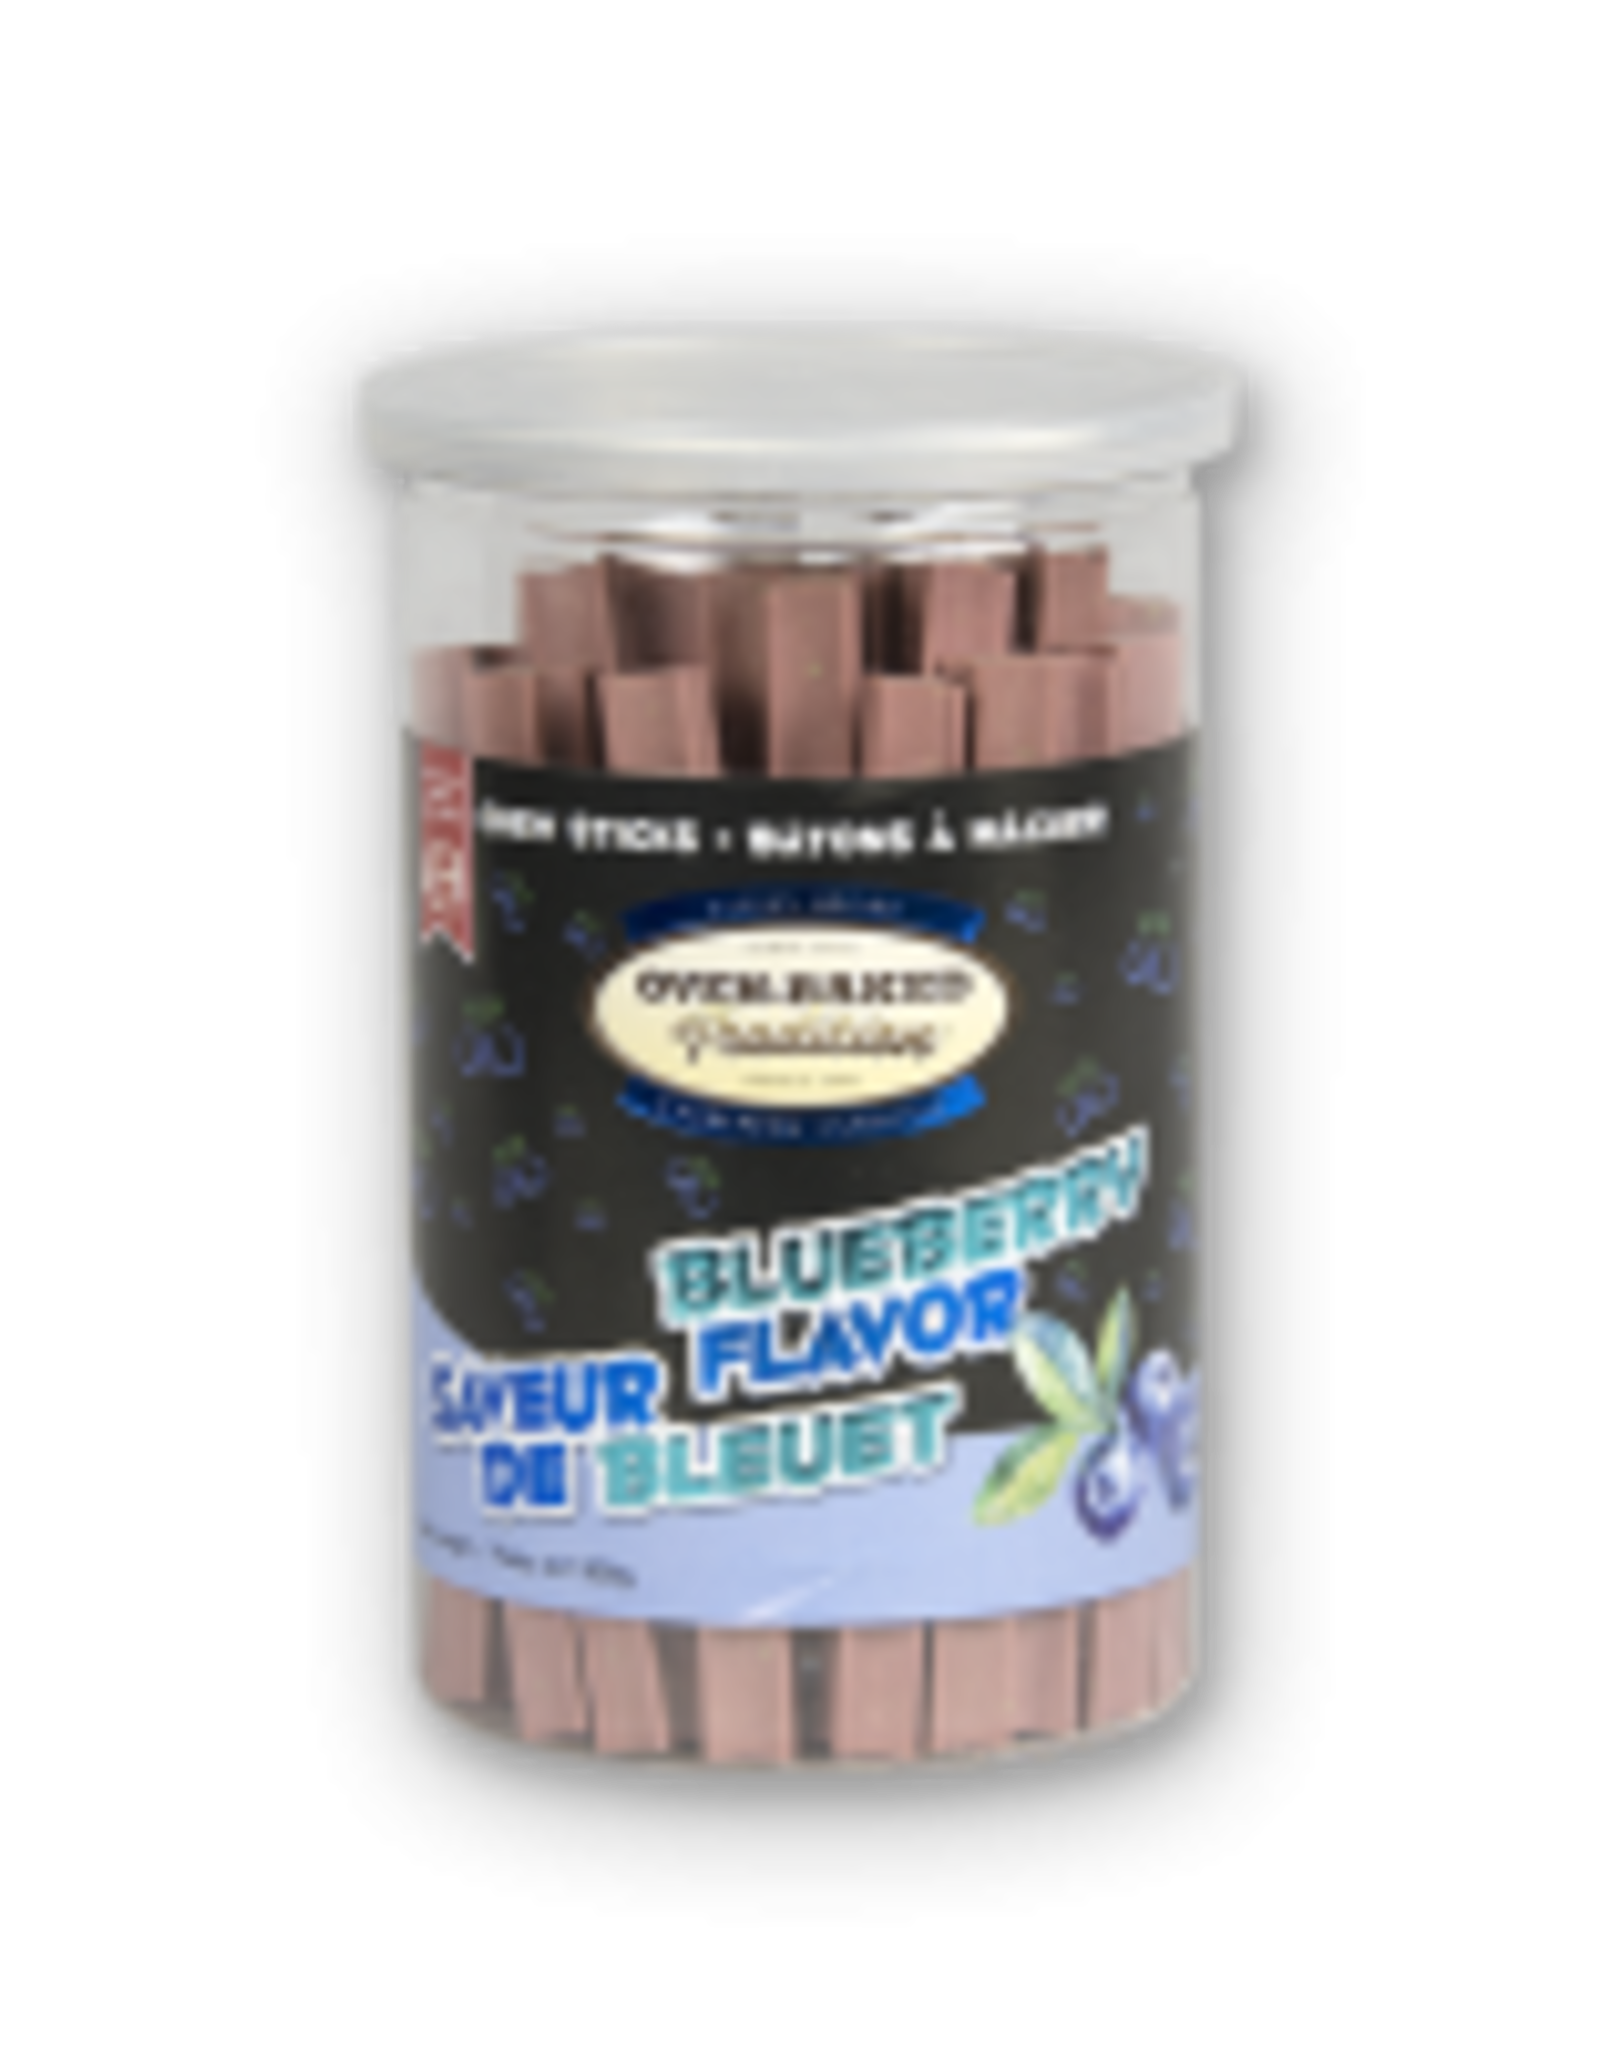 Ovenbaked Tradition Oven Baked Tradition Blueberry Chew Sticks 500g Whole Tub